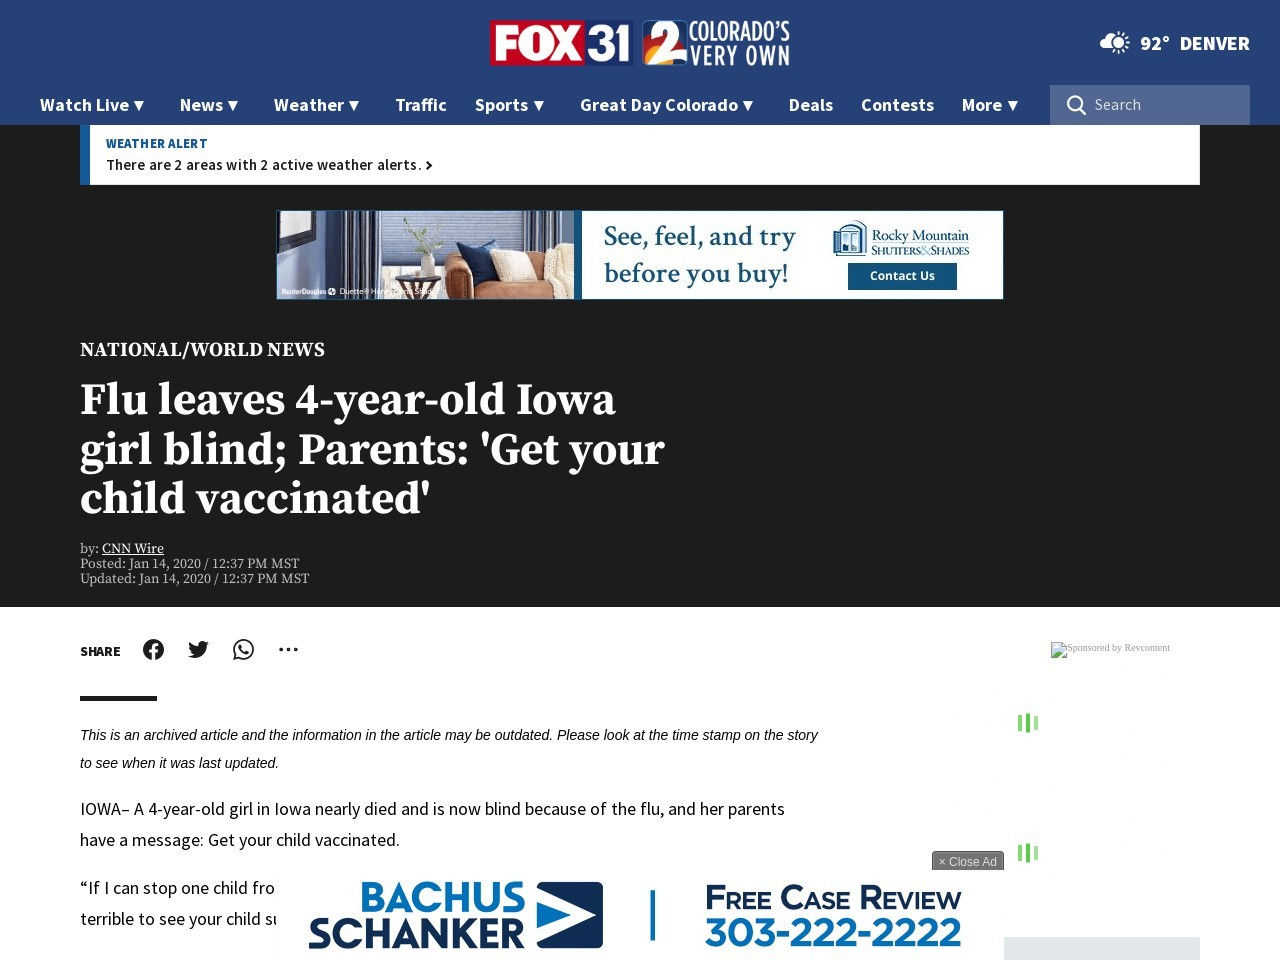 Flu leaves 4-year-old Iowa girl blind; Parents: 'Get your child vaccinated'